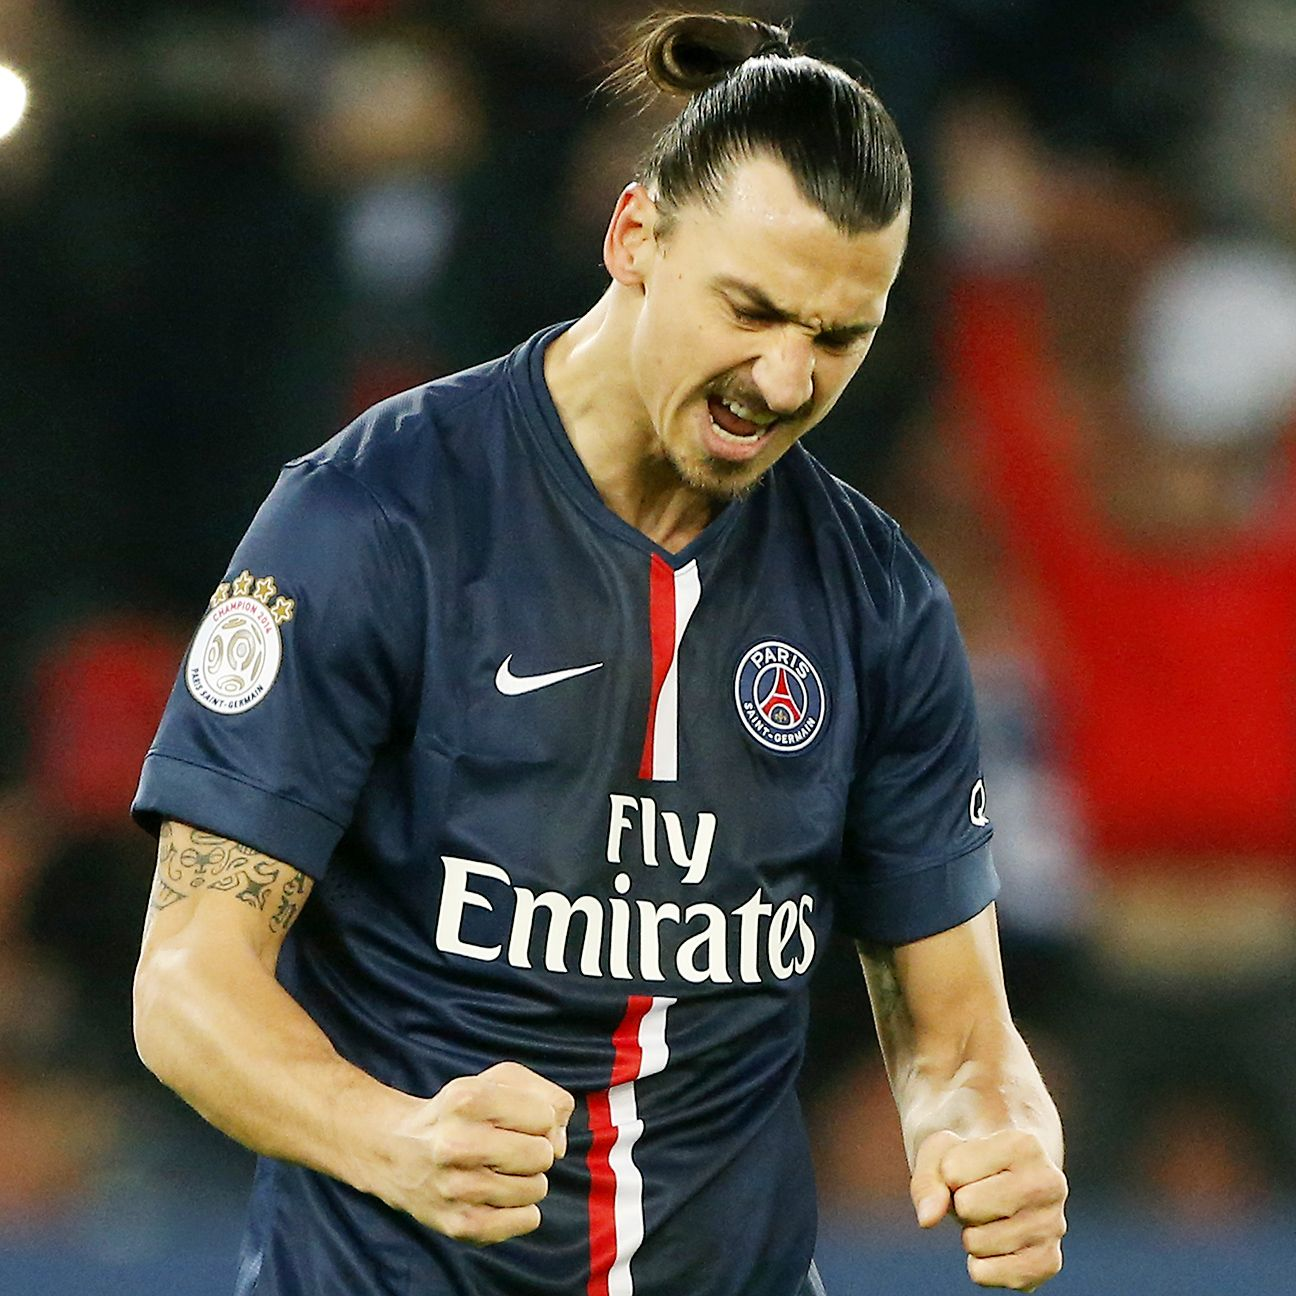 Zlatan Ibrahimovic looks to be rounding back into form after tallying another goal since his return from injury.